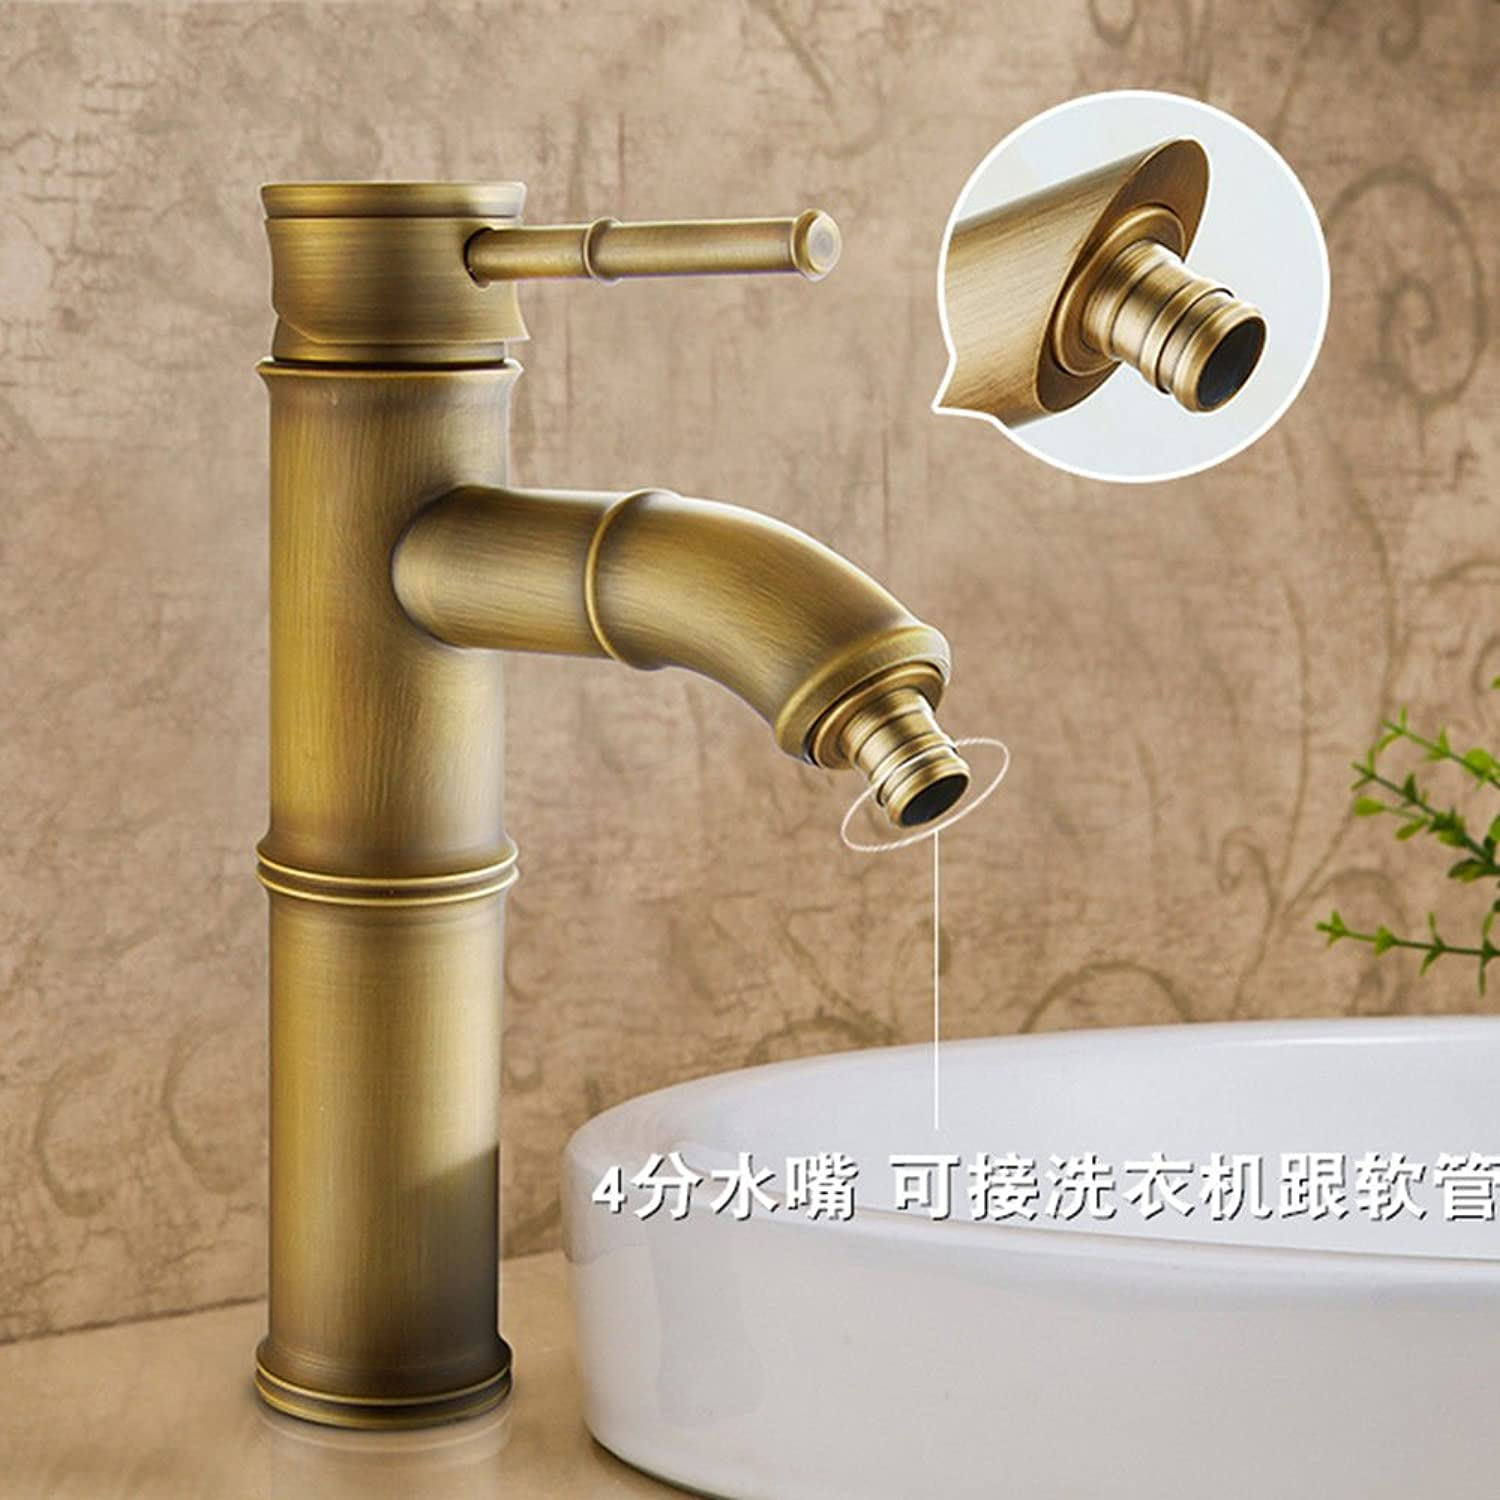 Lpophy Bathroom Sink Mixer Taps Faucet Bath Waterfall Cold and Hot Water Tap for Washroom Bathroom and Kitchen Copper Antique Single Hole Hot and Cold D